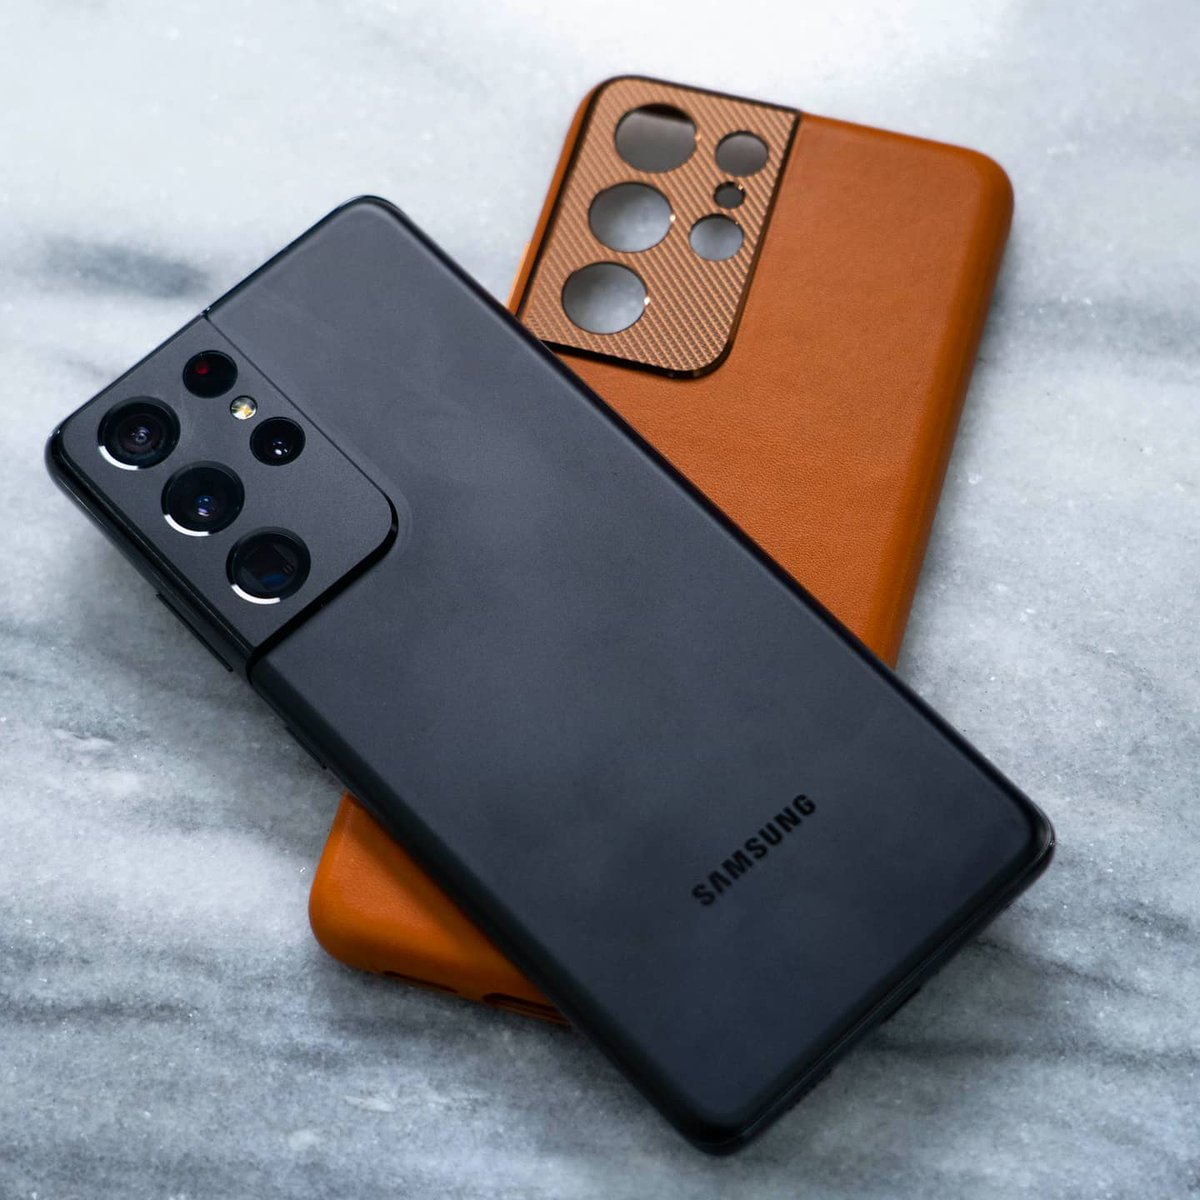 Replying to @booredatwork: The official brown leather case for the #GalaxyS21Ultra is 🔥. What accessories are you using?